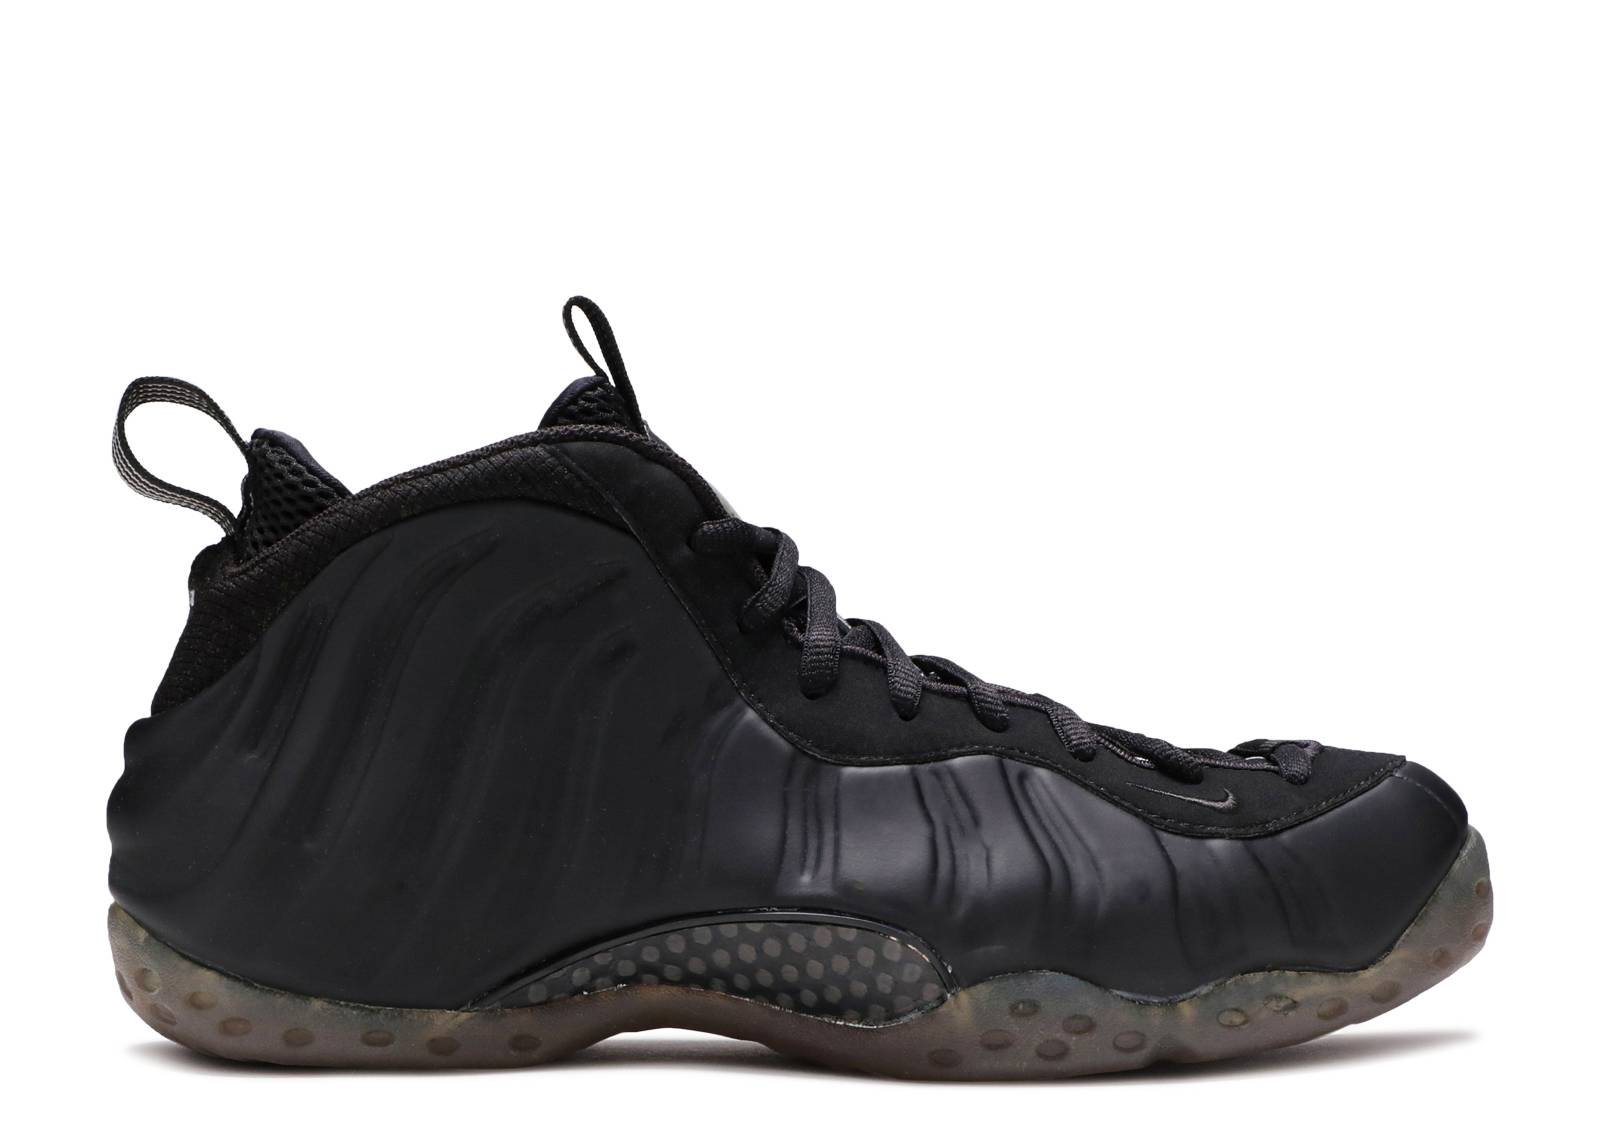 3a567dc7c38 Air Foamposite One